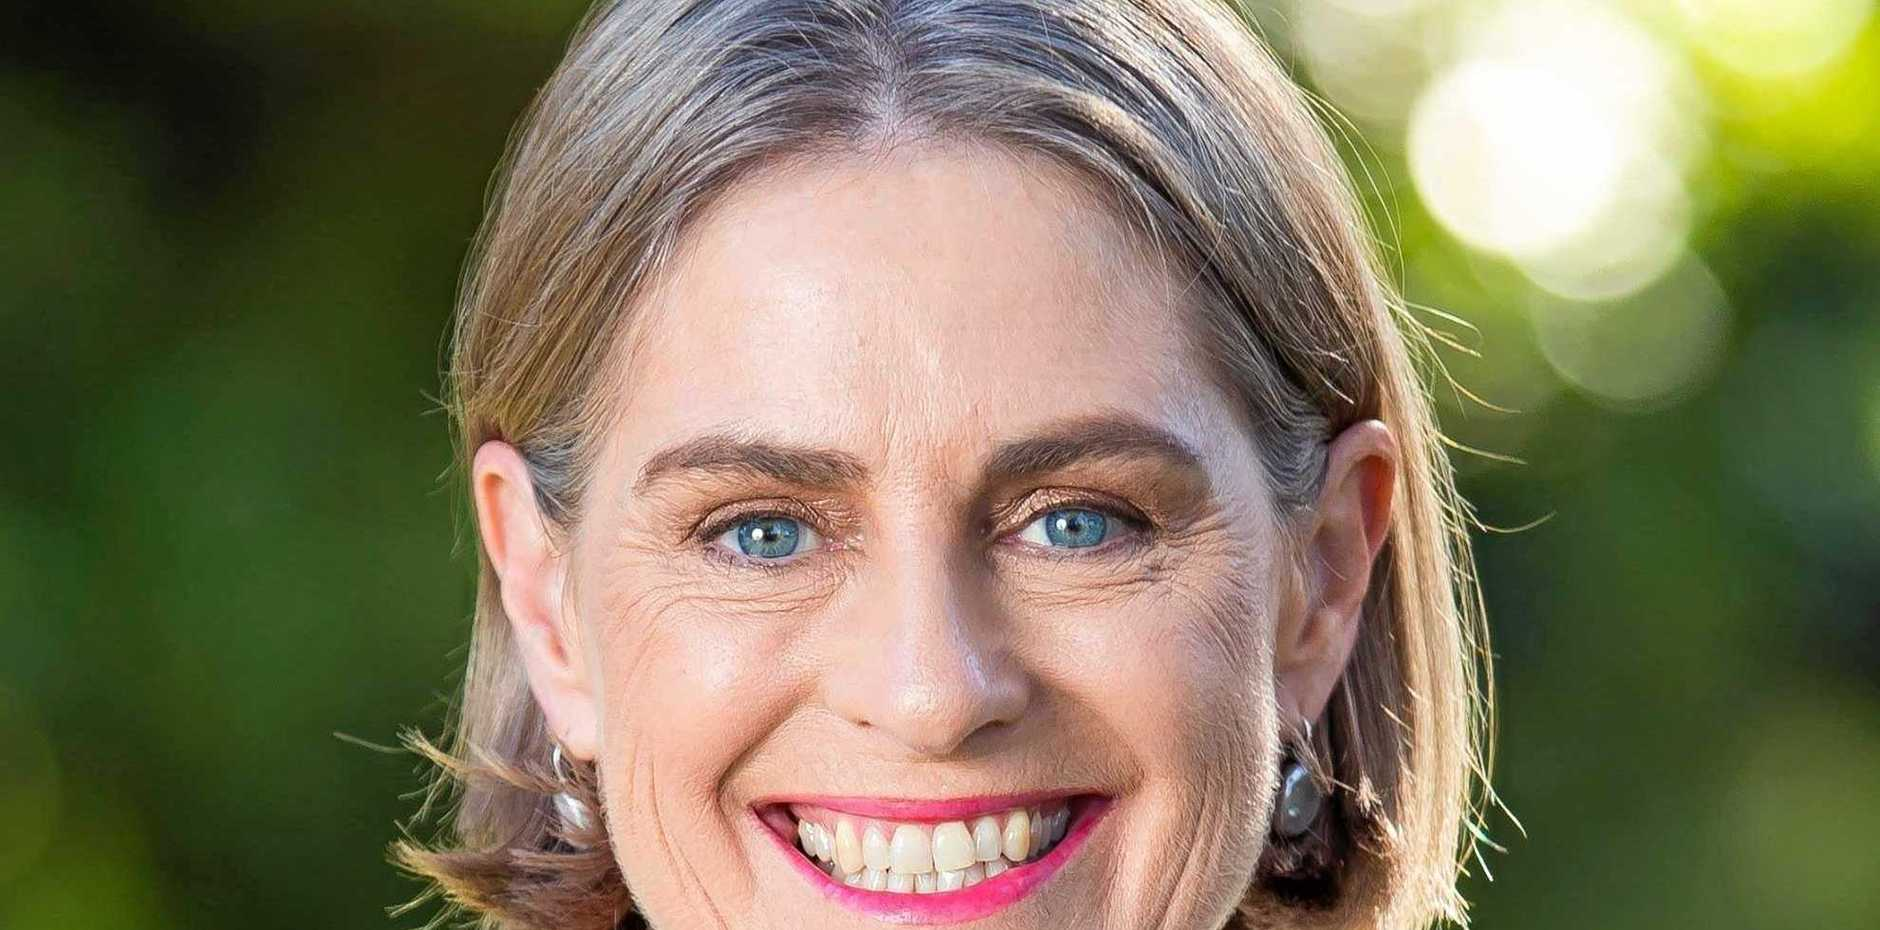 Toowoomba Regional Council portfolio leader for finance and business strategy, Megan O'Hara Sullivan, said staff would be able to answer a range of council-related questions while in Yarraman.